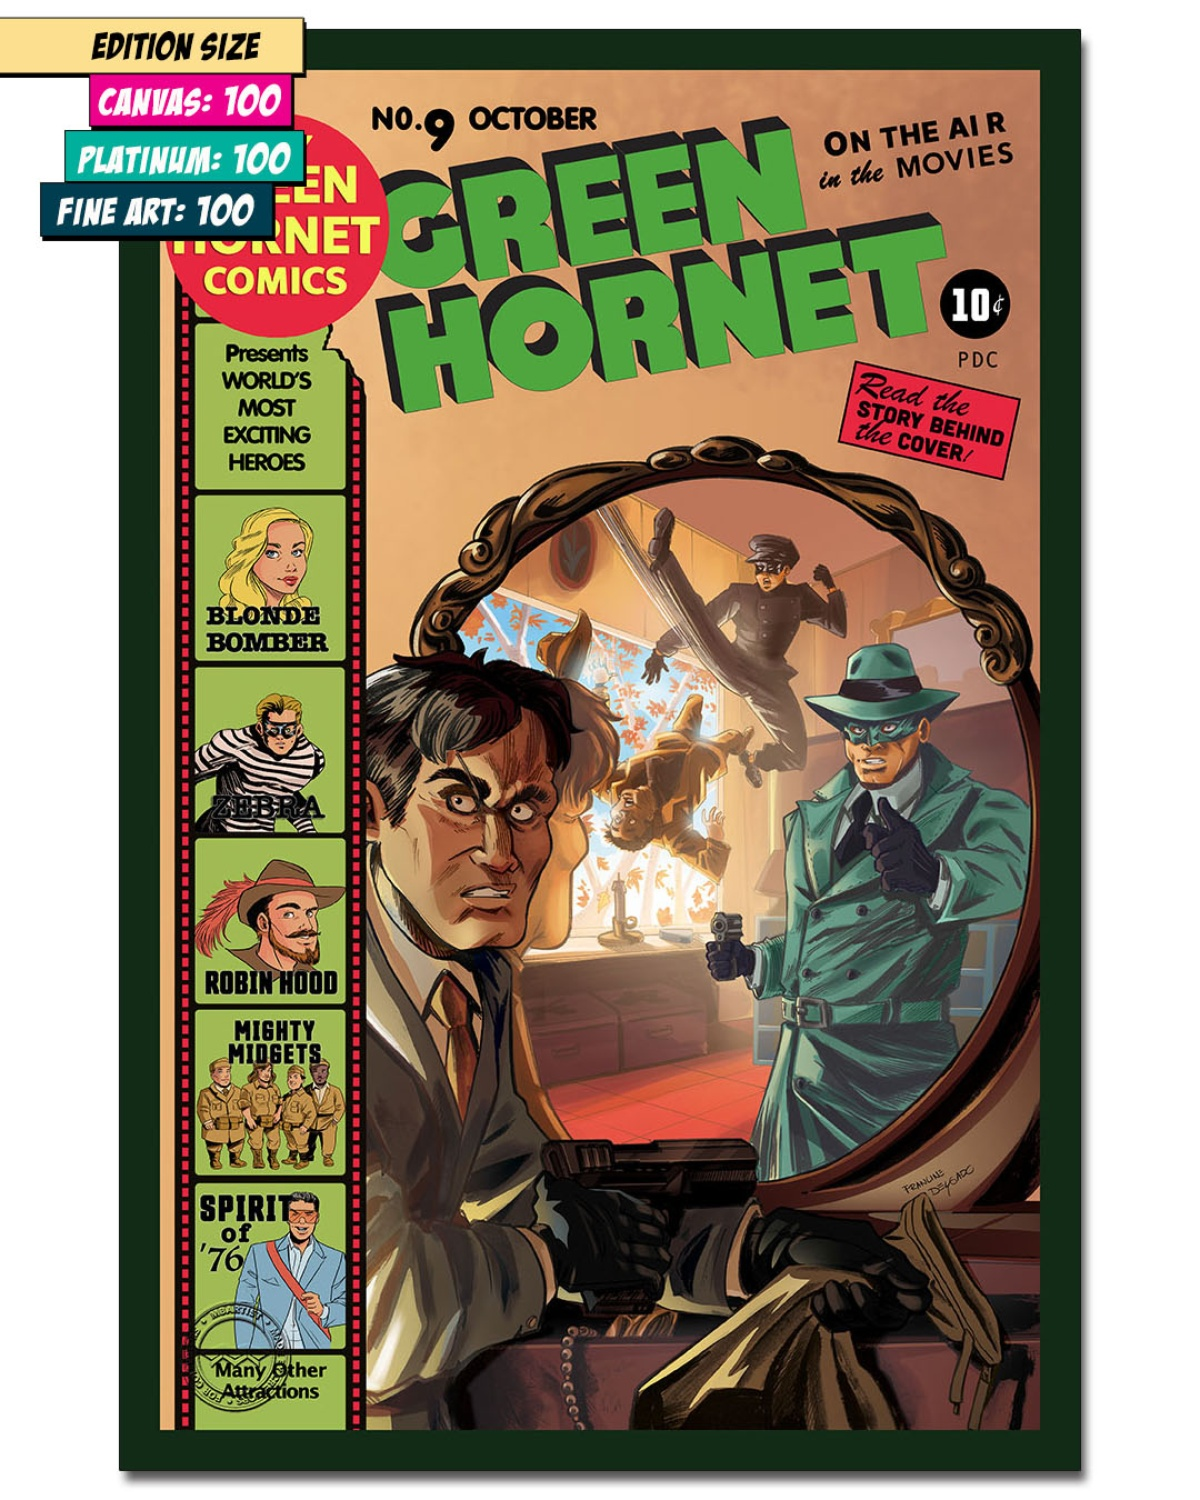 GREEN HORNET #9: REFLECTION OF JUSTICE